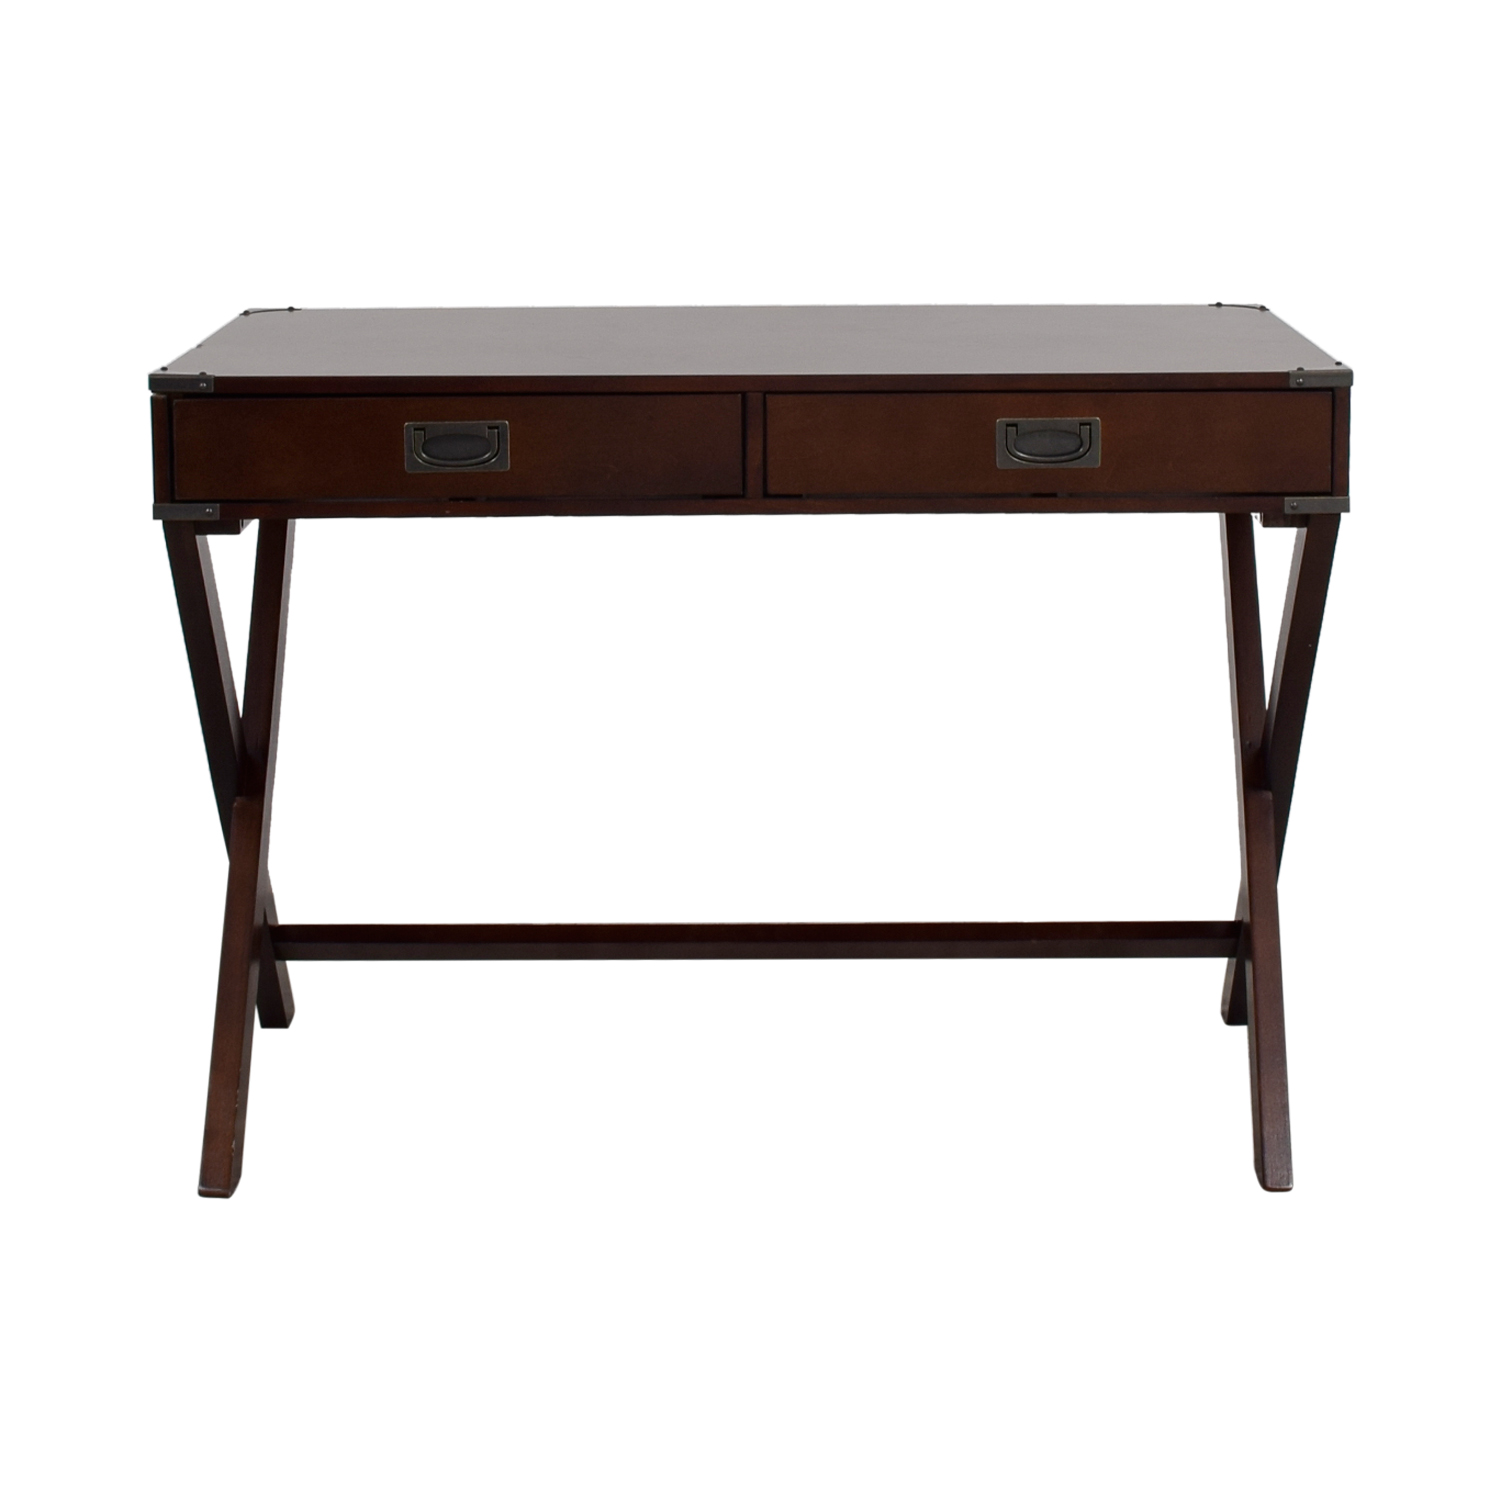 Mackin Mackin Two-Drawer Writing Desk used